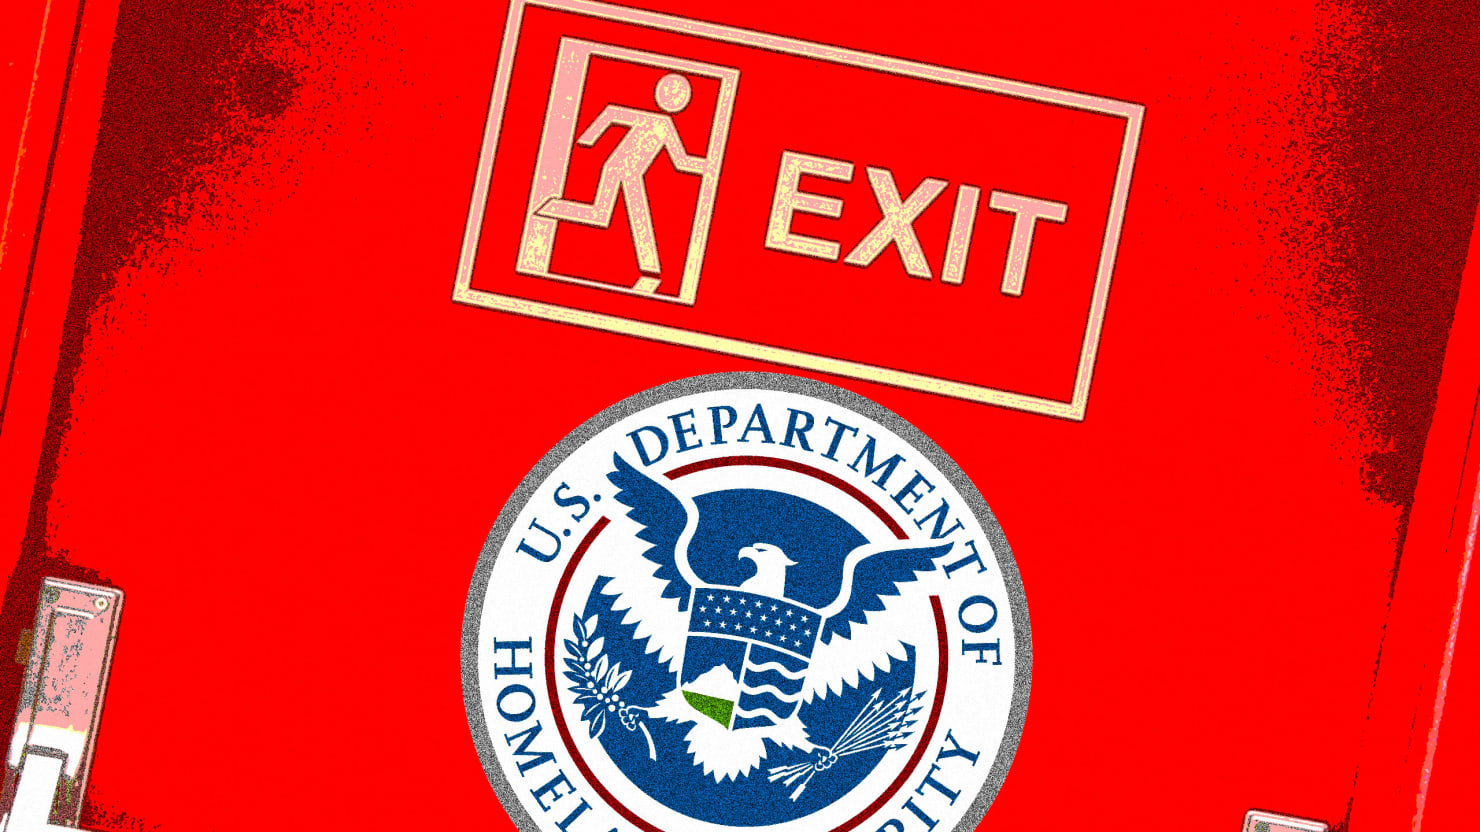 Dhs top leaders in hiding staffers say as the trump administration begins issuing executive orders on immigration the department of homeland security faces a skeletal leadership structure awash buycottarizona